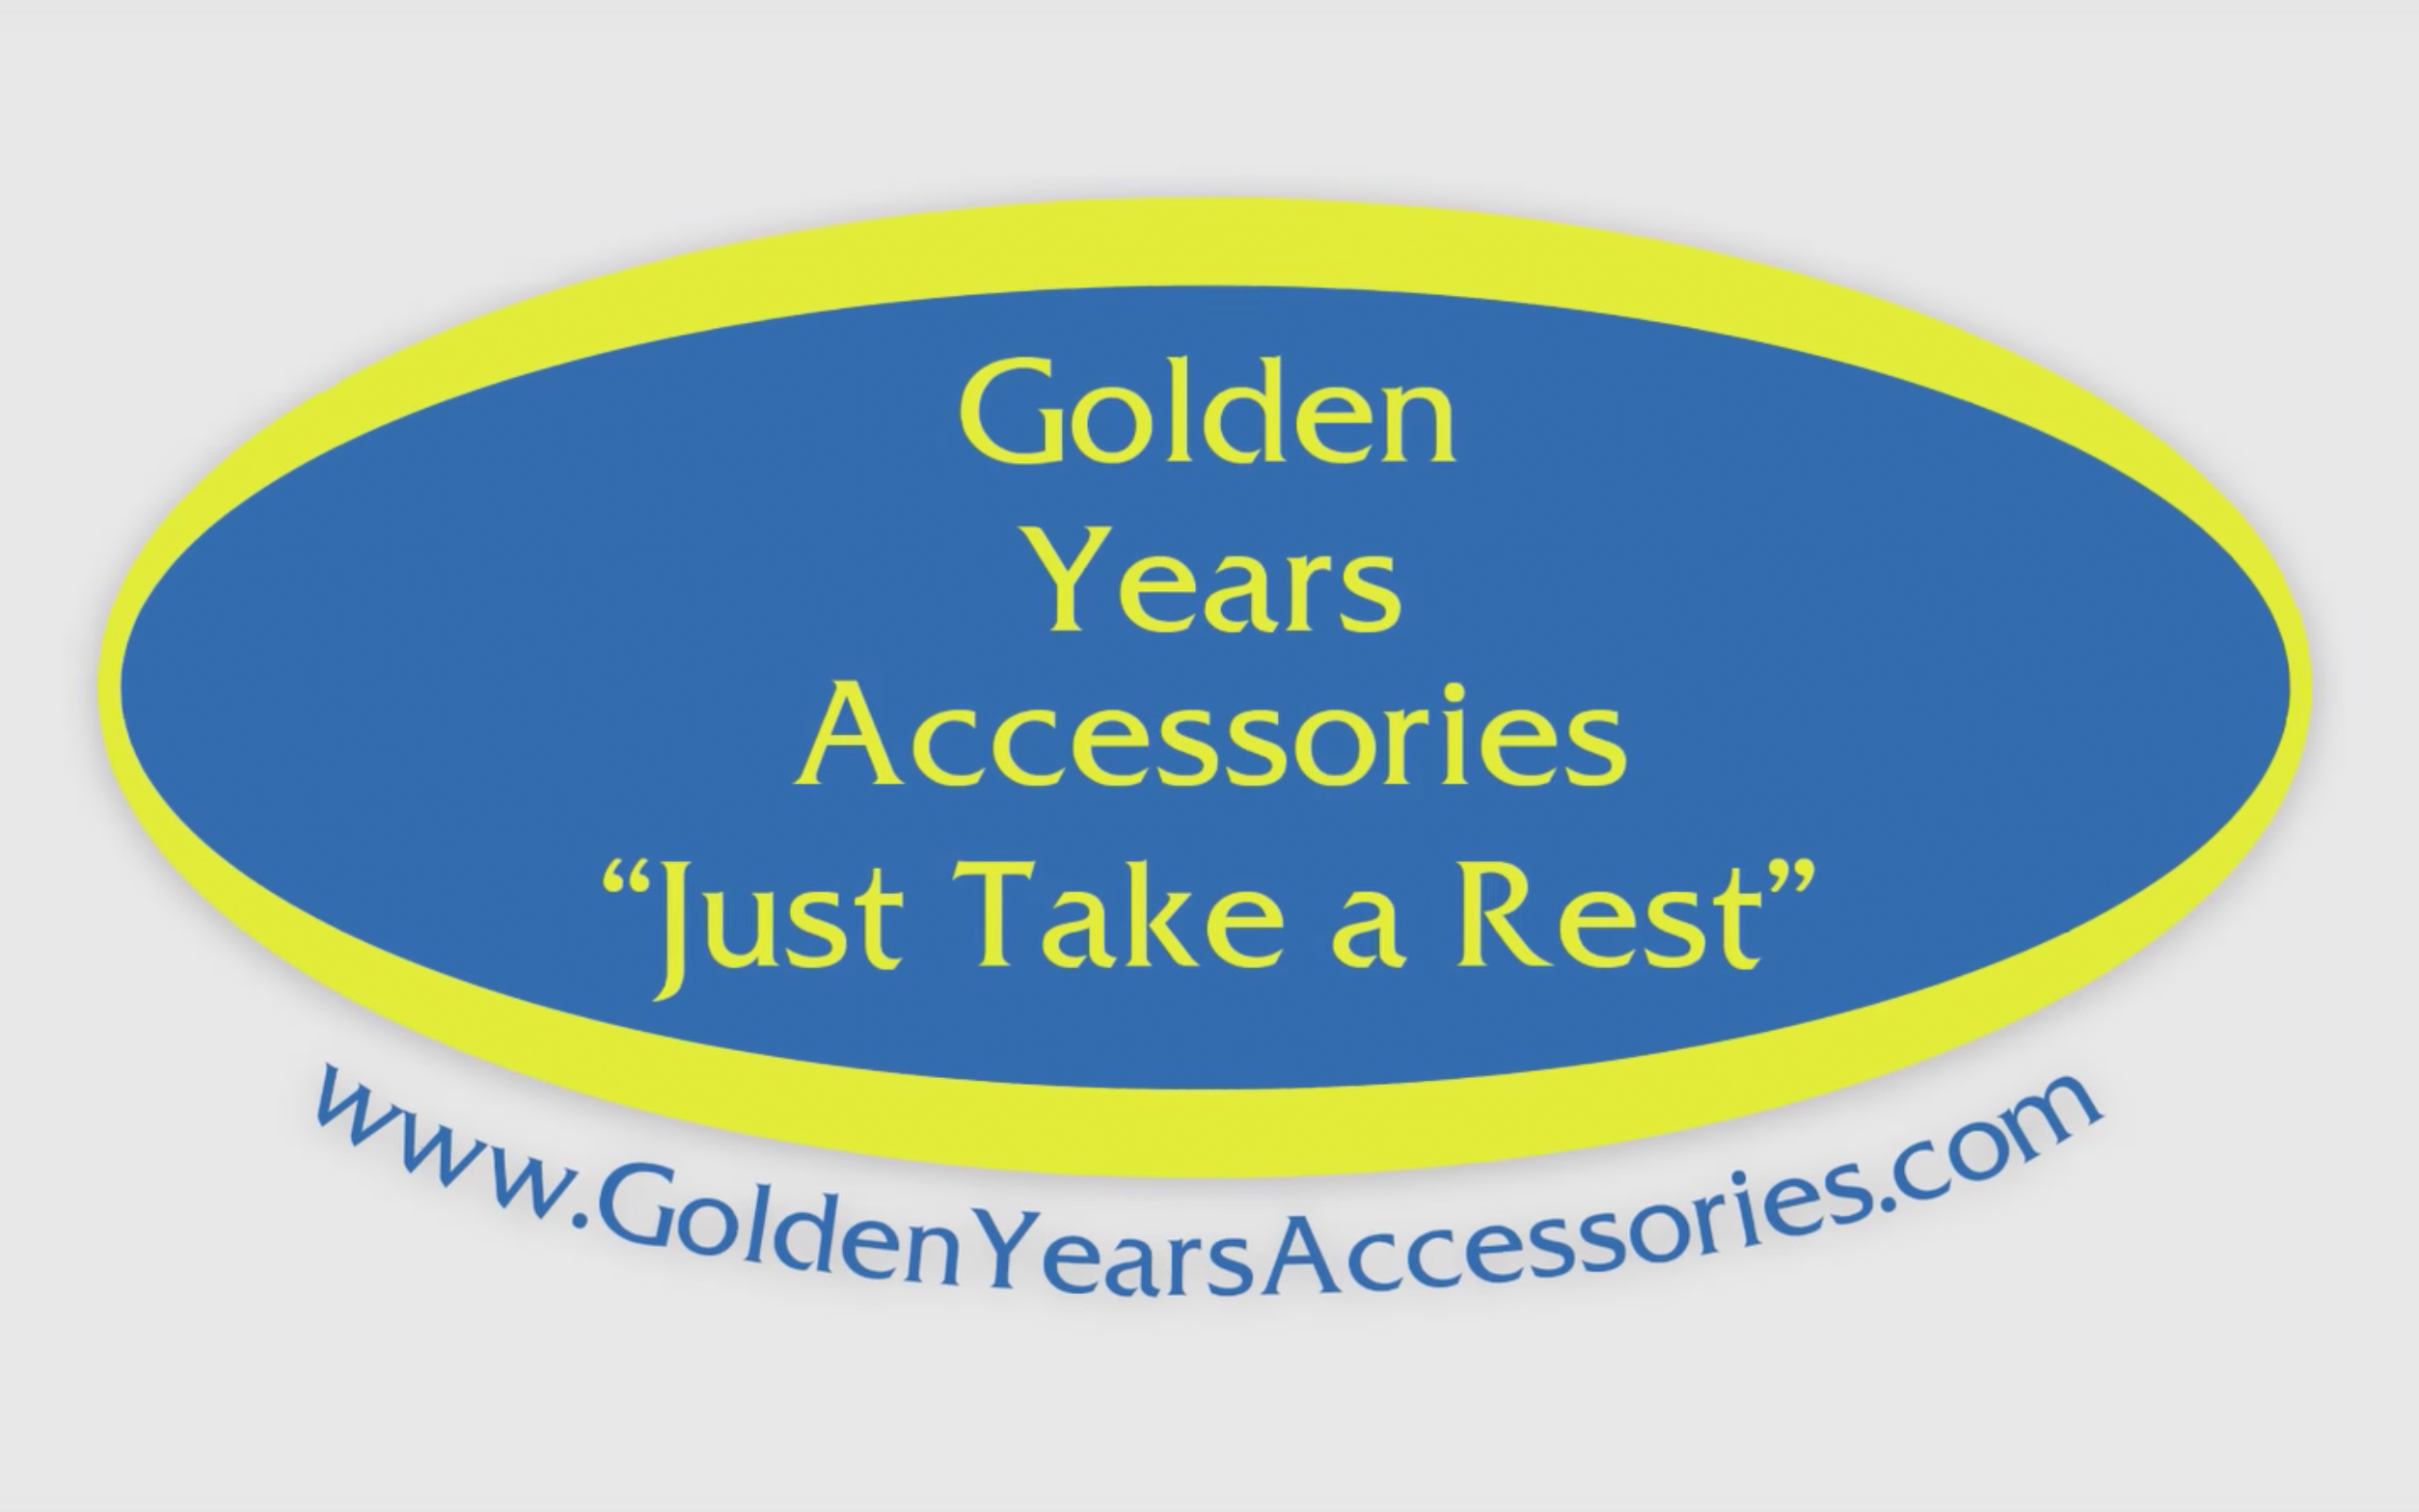 Golden Years Accessories